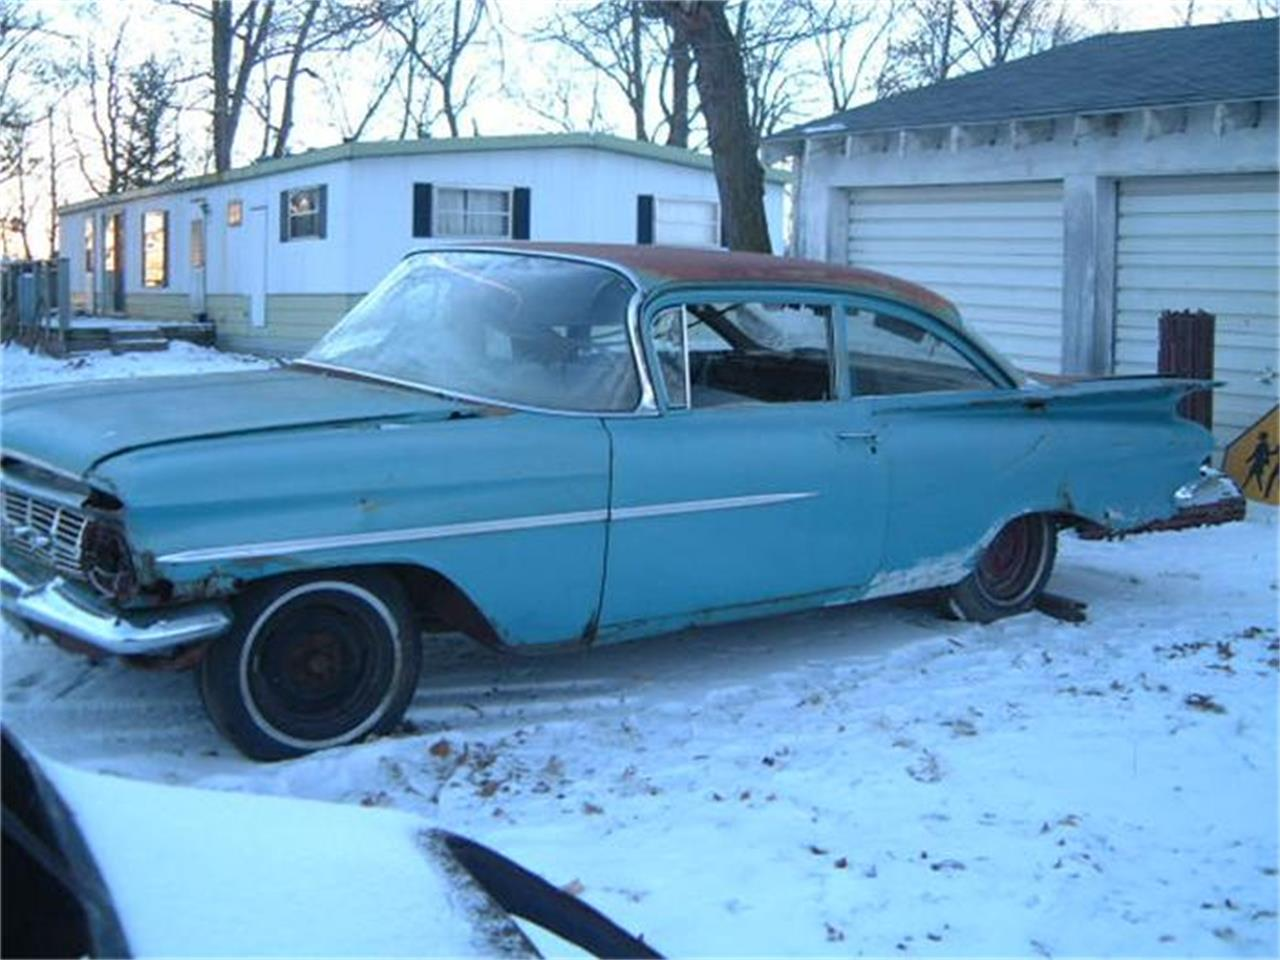 1959 chevrolet biscayne for sale | classiccars | cc-36887